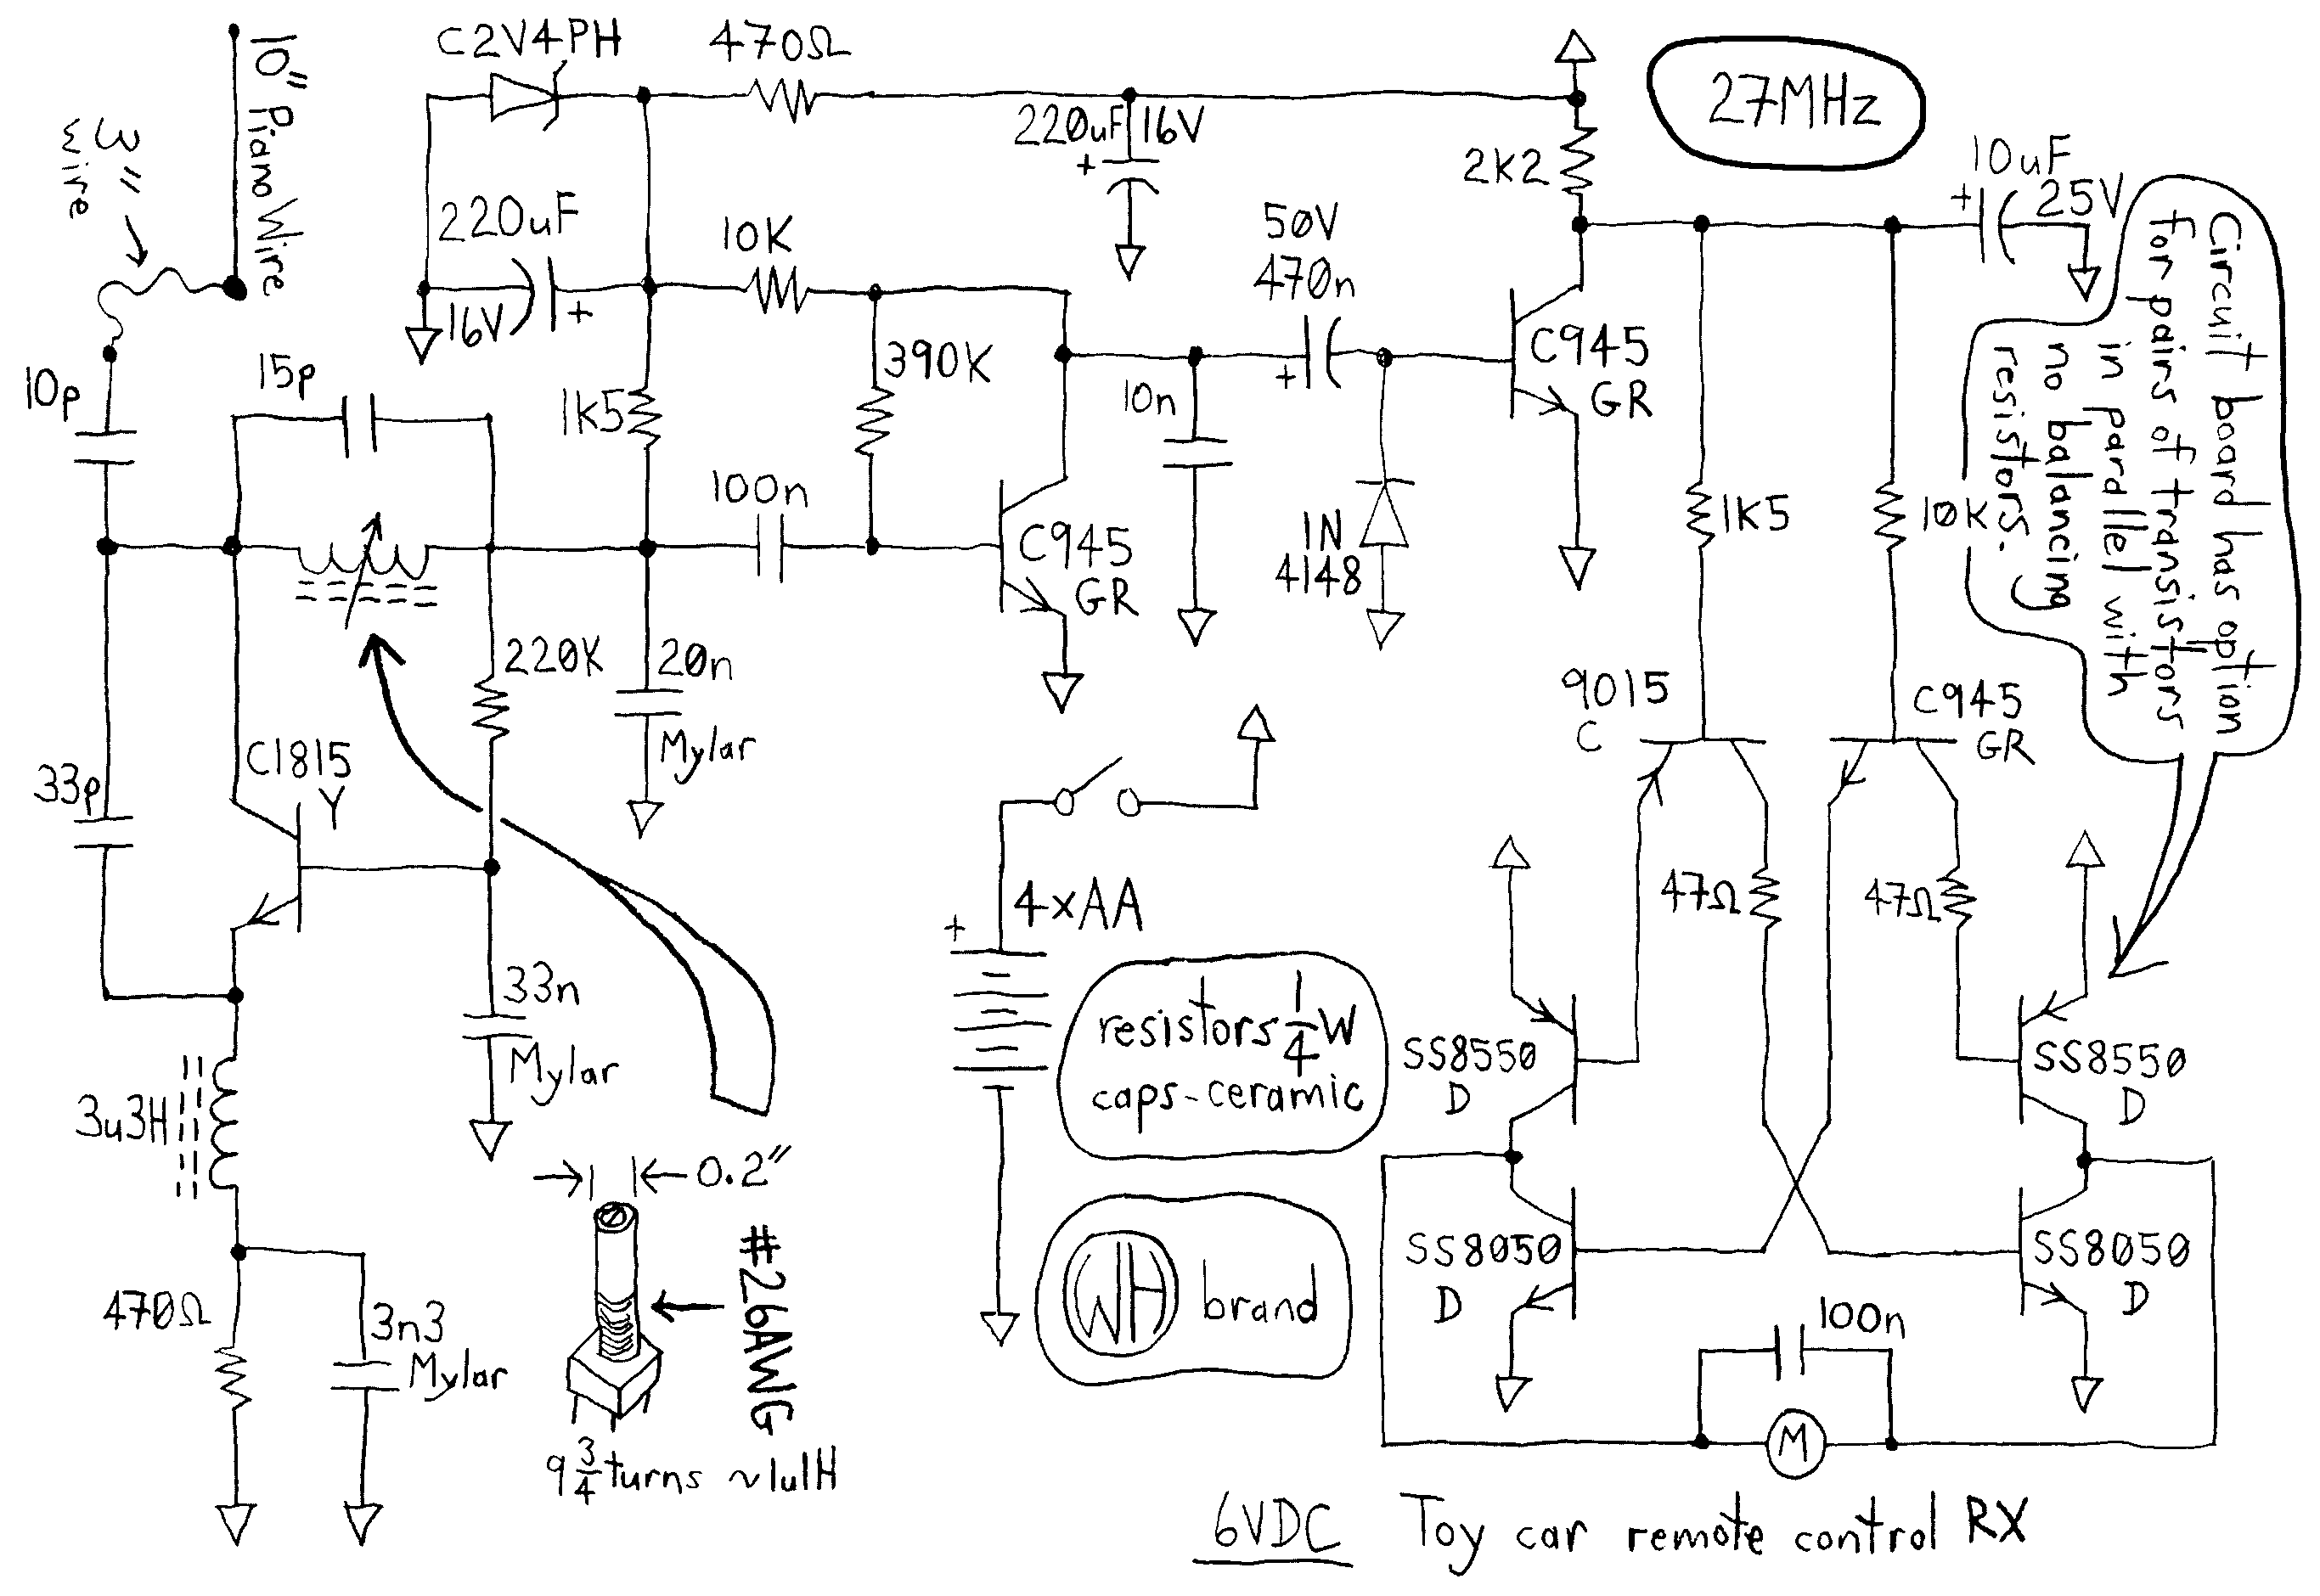 rc car circuit diagram the wiring diagram rc car circuit diagram vidim wiring diagram circuit diagram